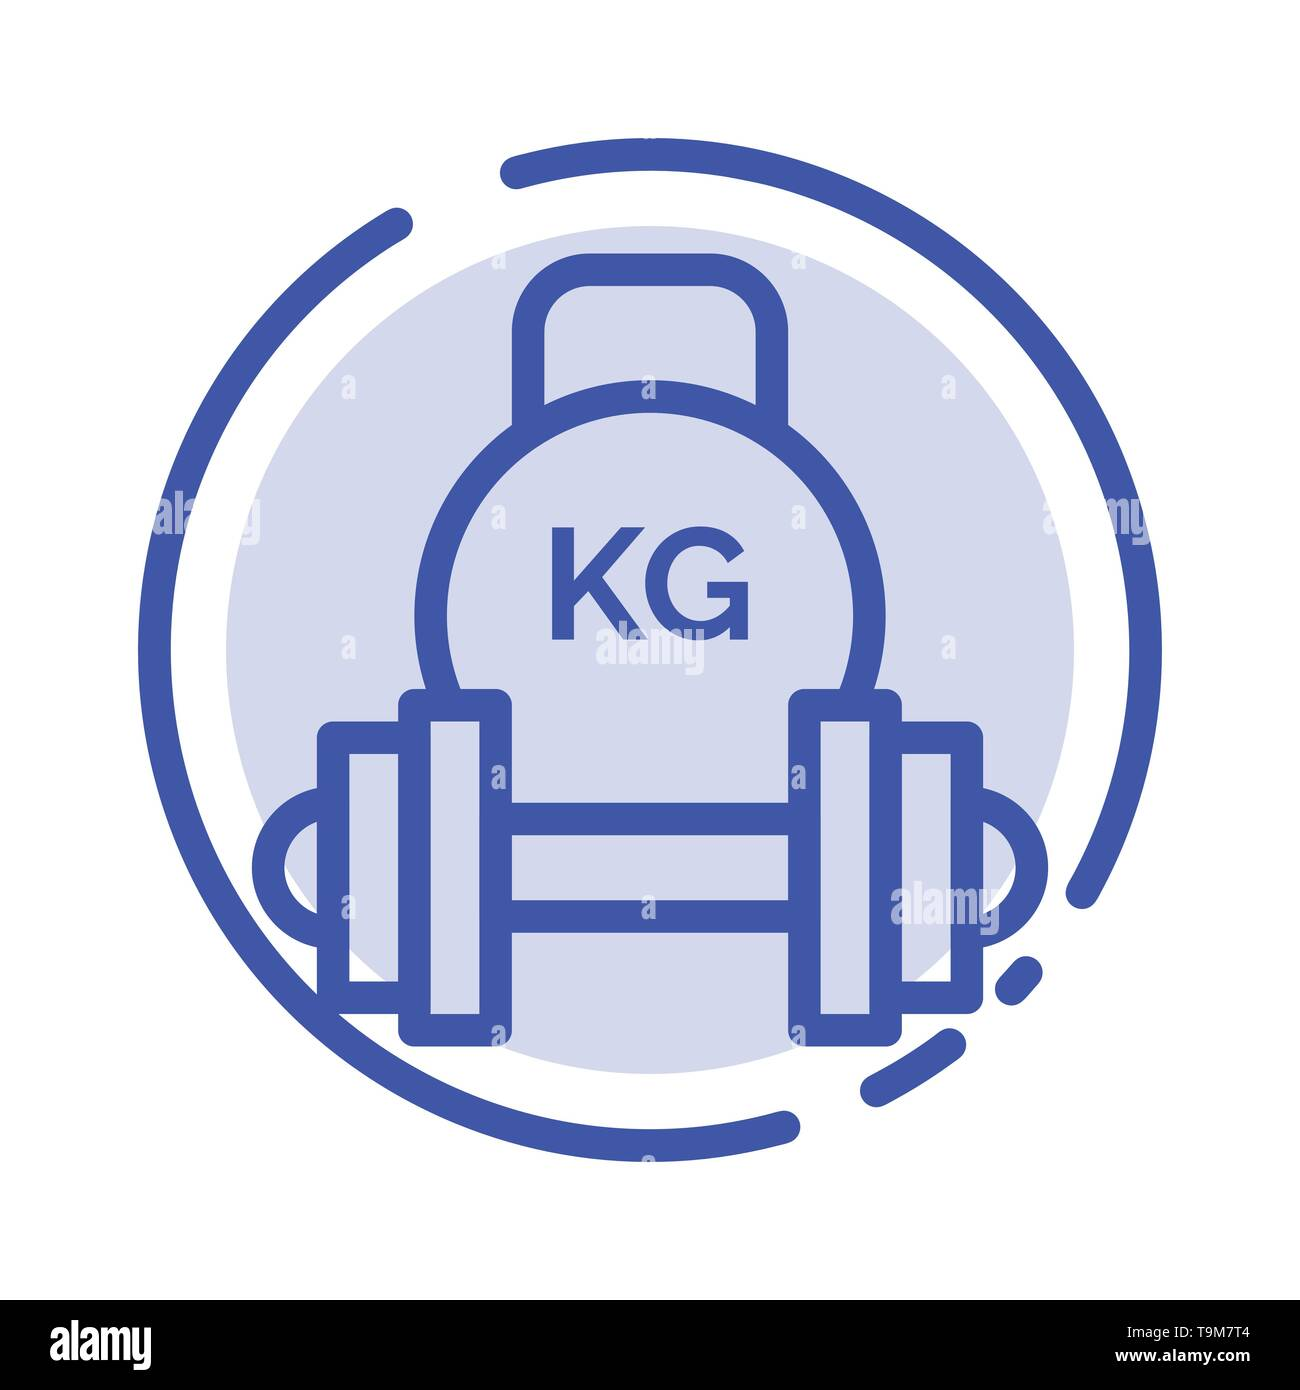 Barbell, Dumbbell, Equipment, Kettle bell, Weight Blue Dotted Line Line Icon - Stock Image